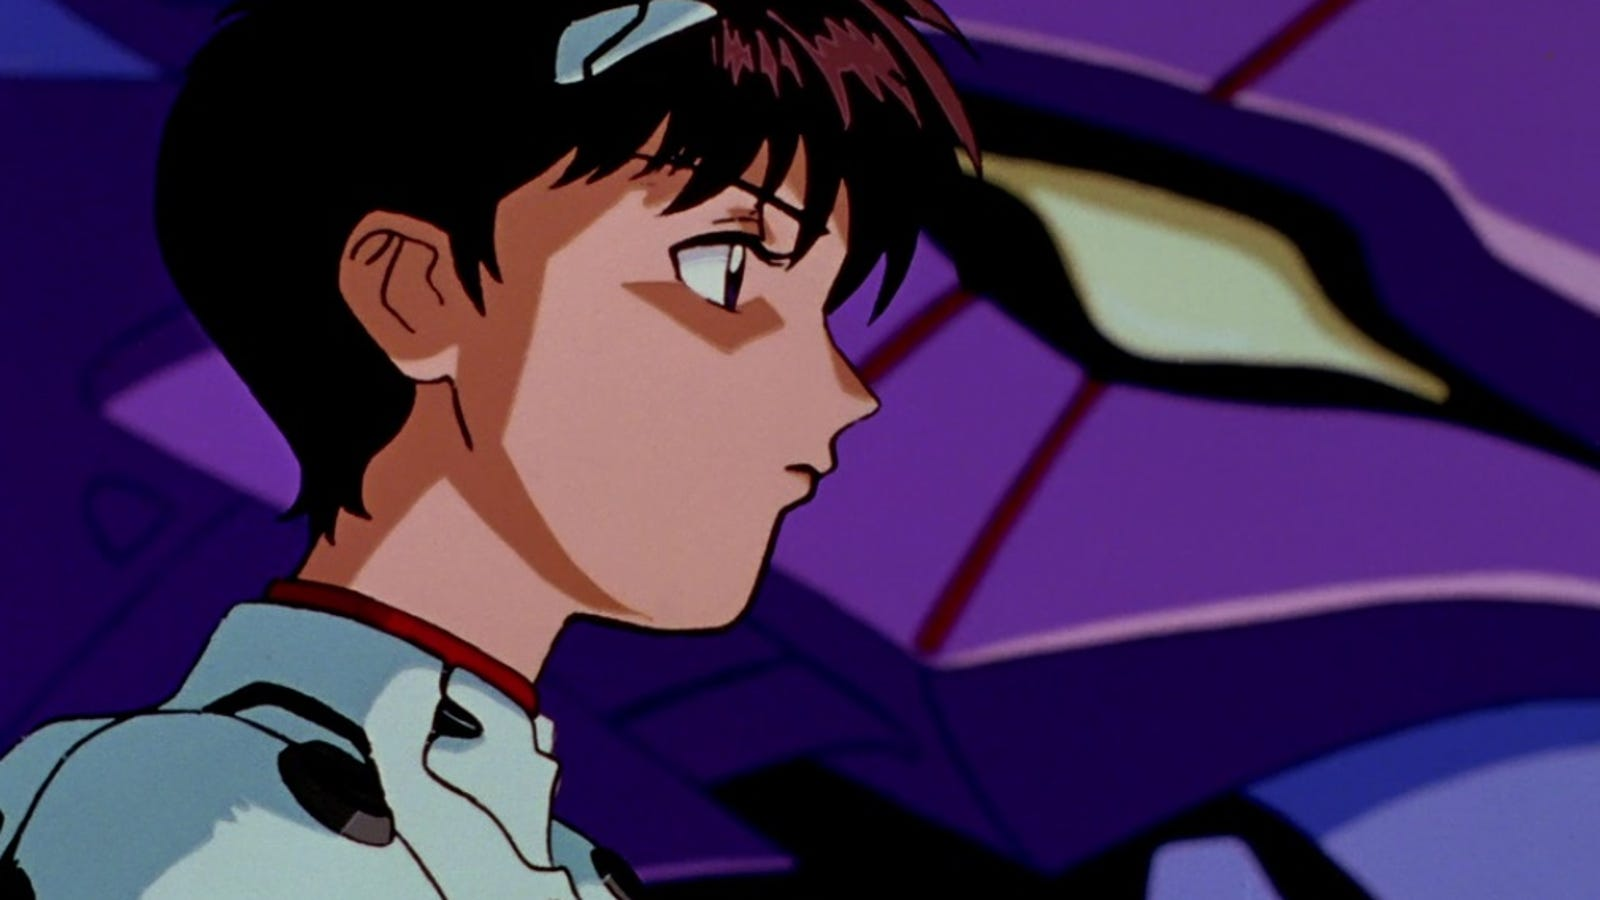 Neon Genesis Evangelion Is About The Cost And Trauma Of Existence